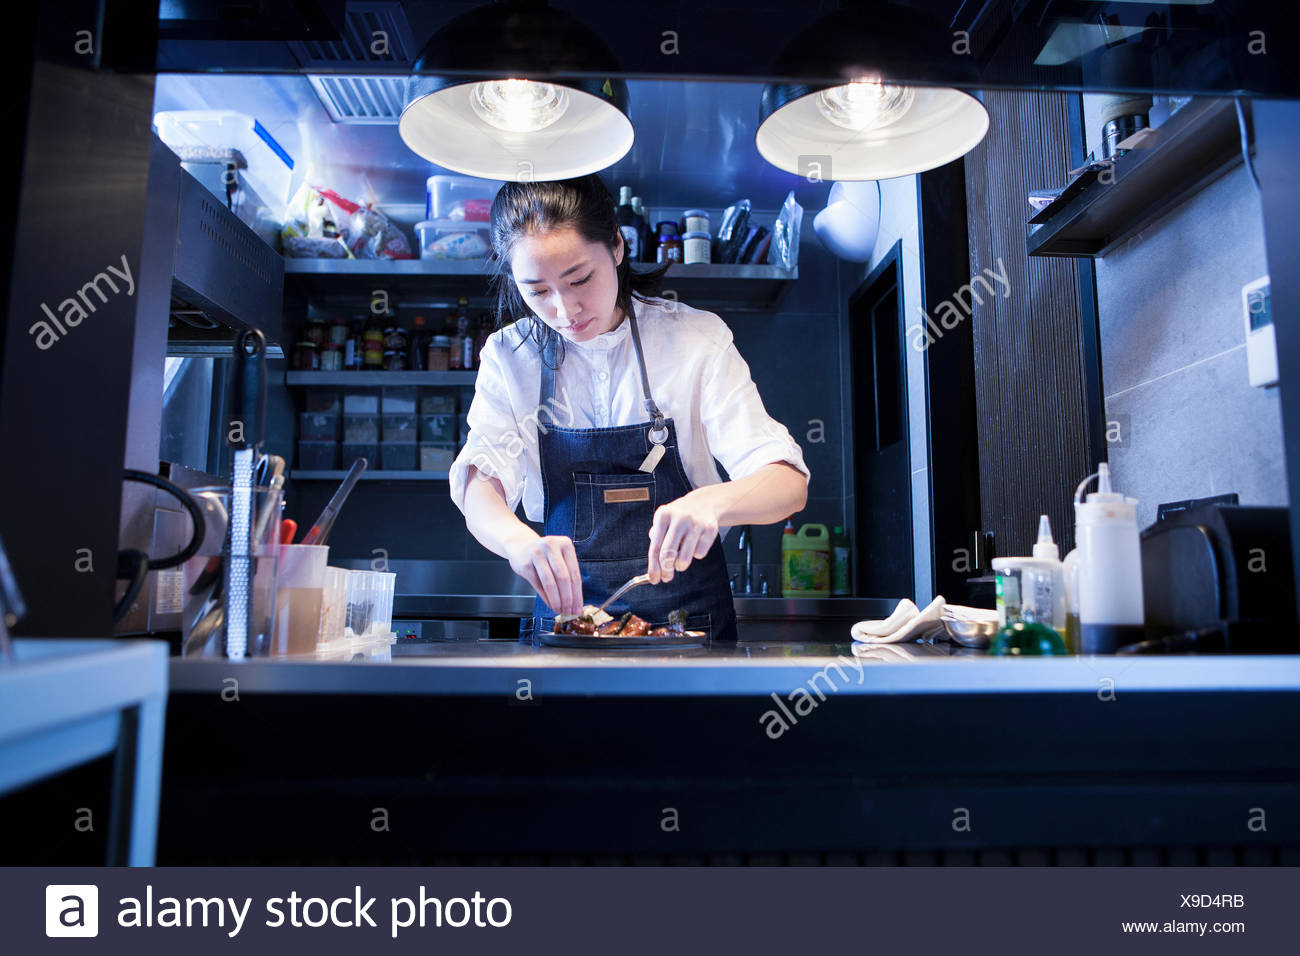 Chef in commercial kitchen preparing food - Stock Image